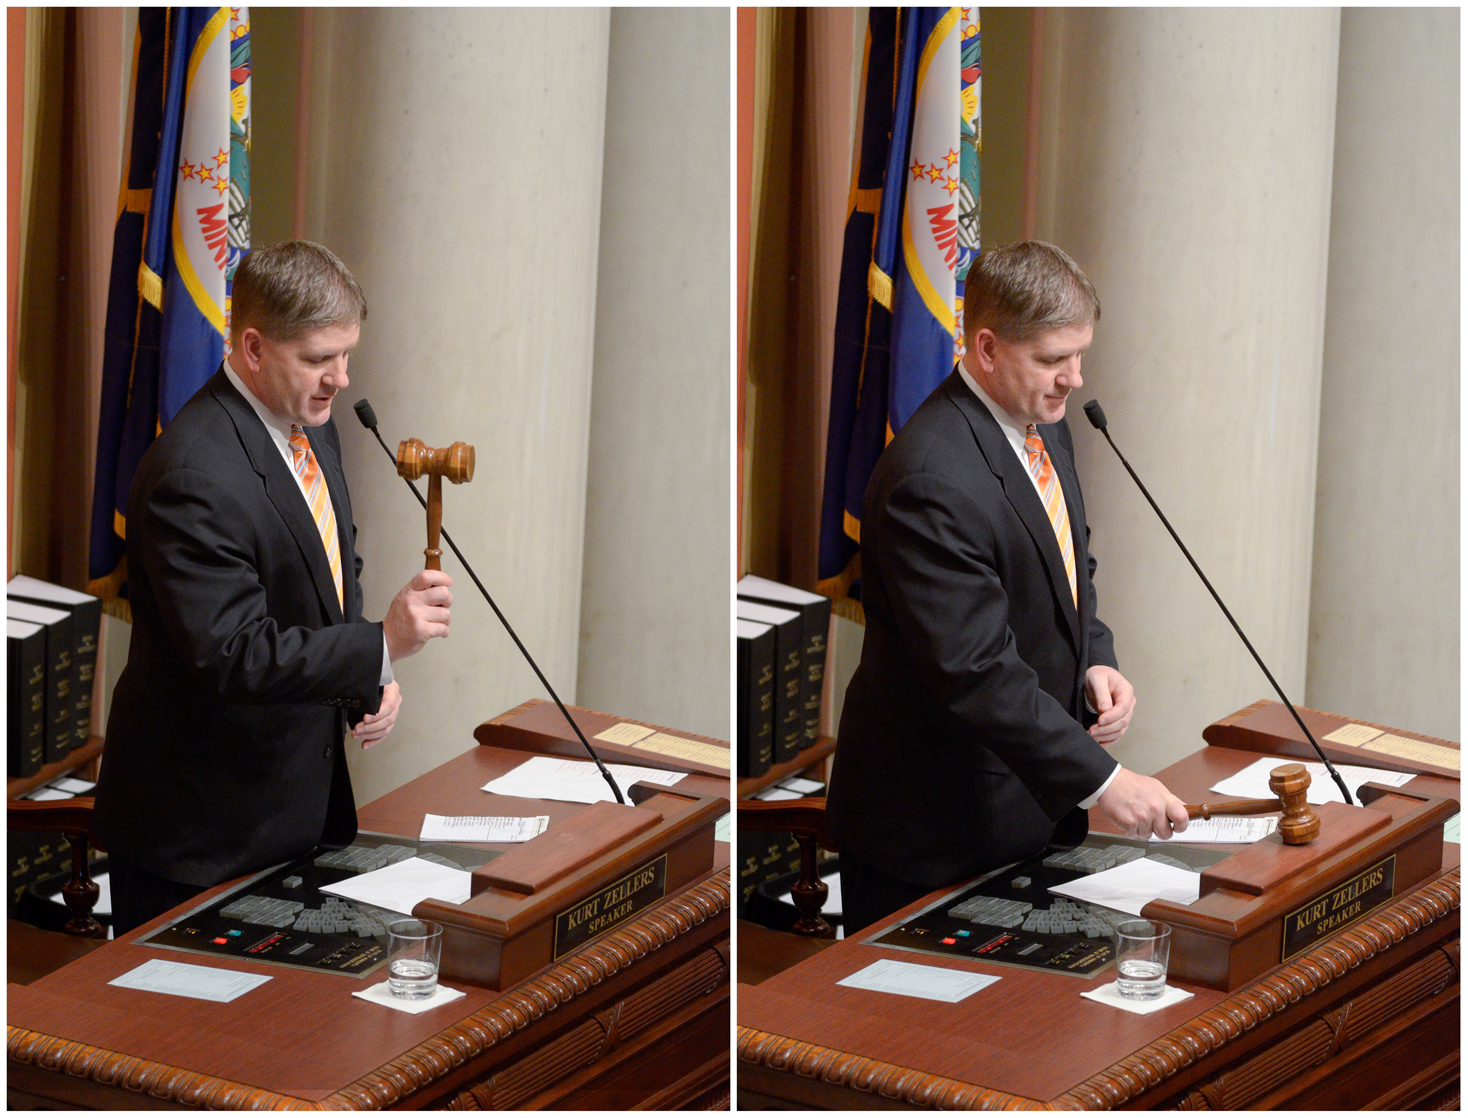 House Speaker Kurt Zellers adjourns the House sine die with the last gavel of the 2012 legislative session. (Photo by Andrew VonBank)